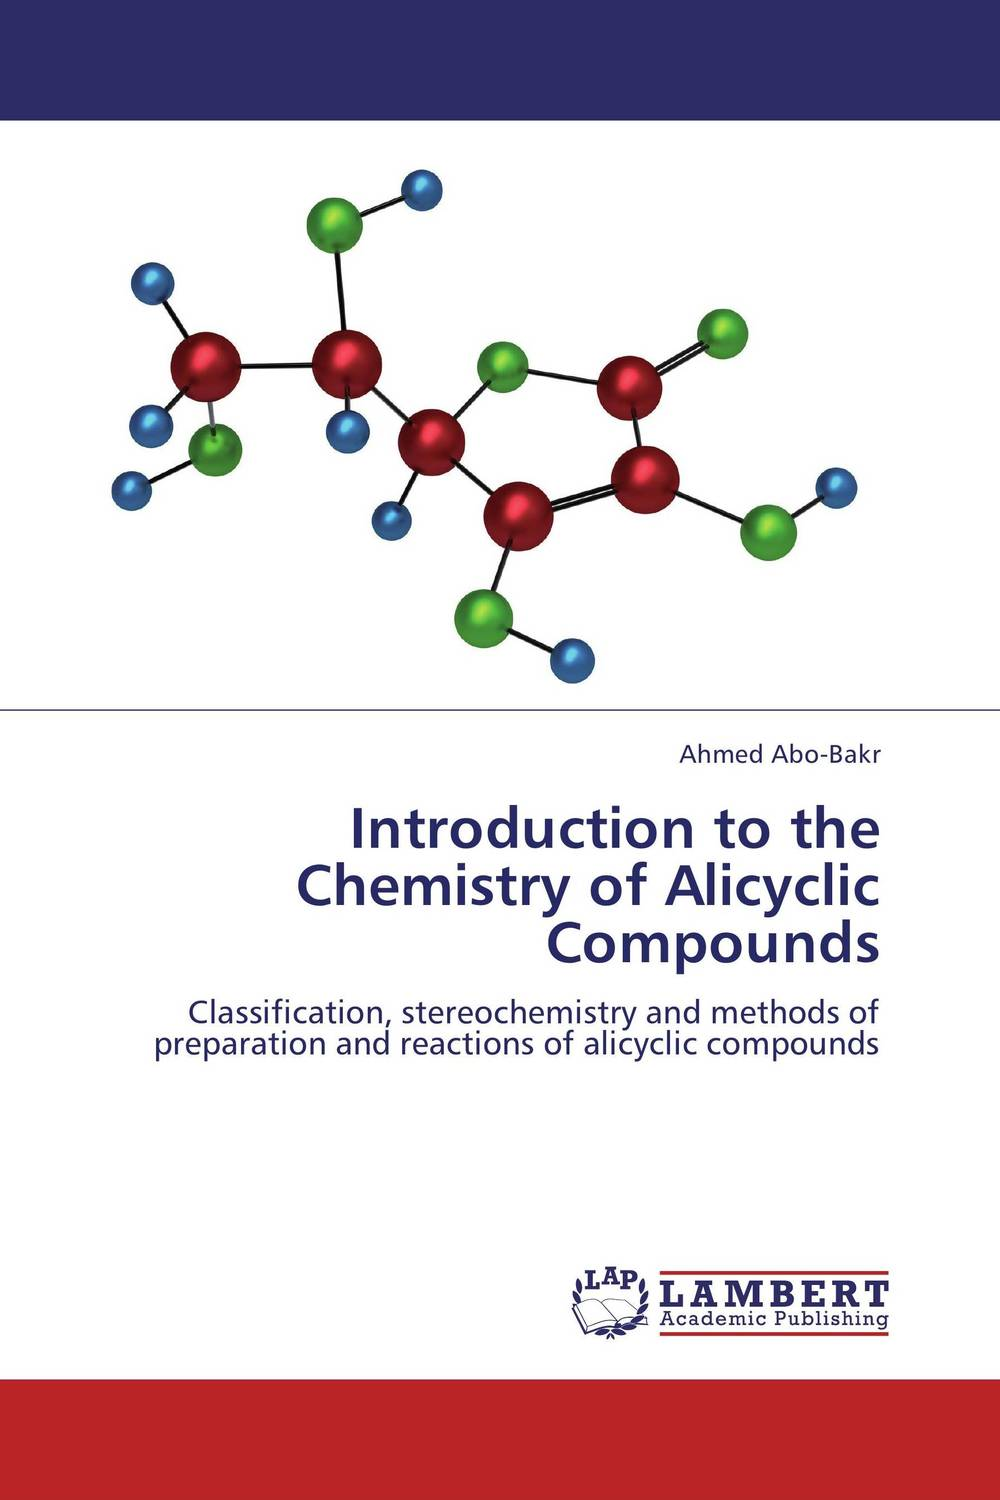 Introduction to the Chemistry of Alicyclic Compounds medicinal chemistry of heterocyclic natural compounds